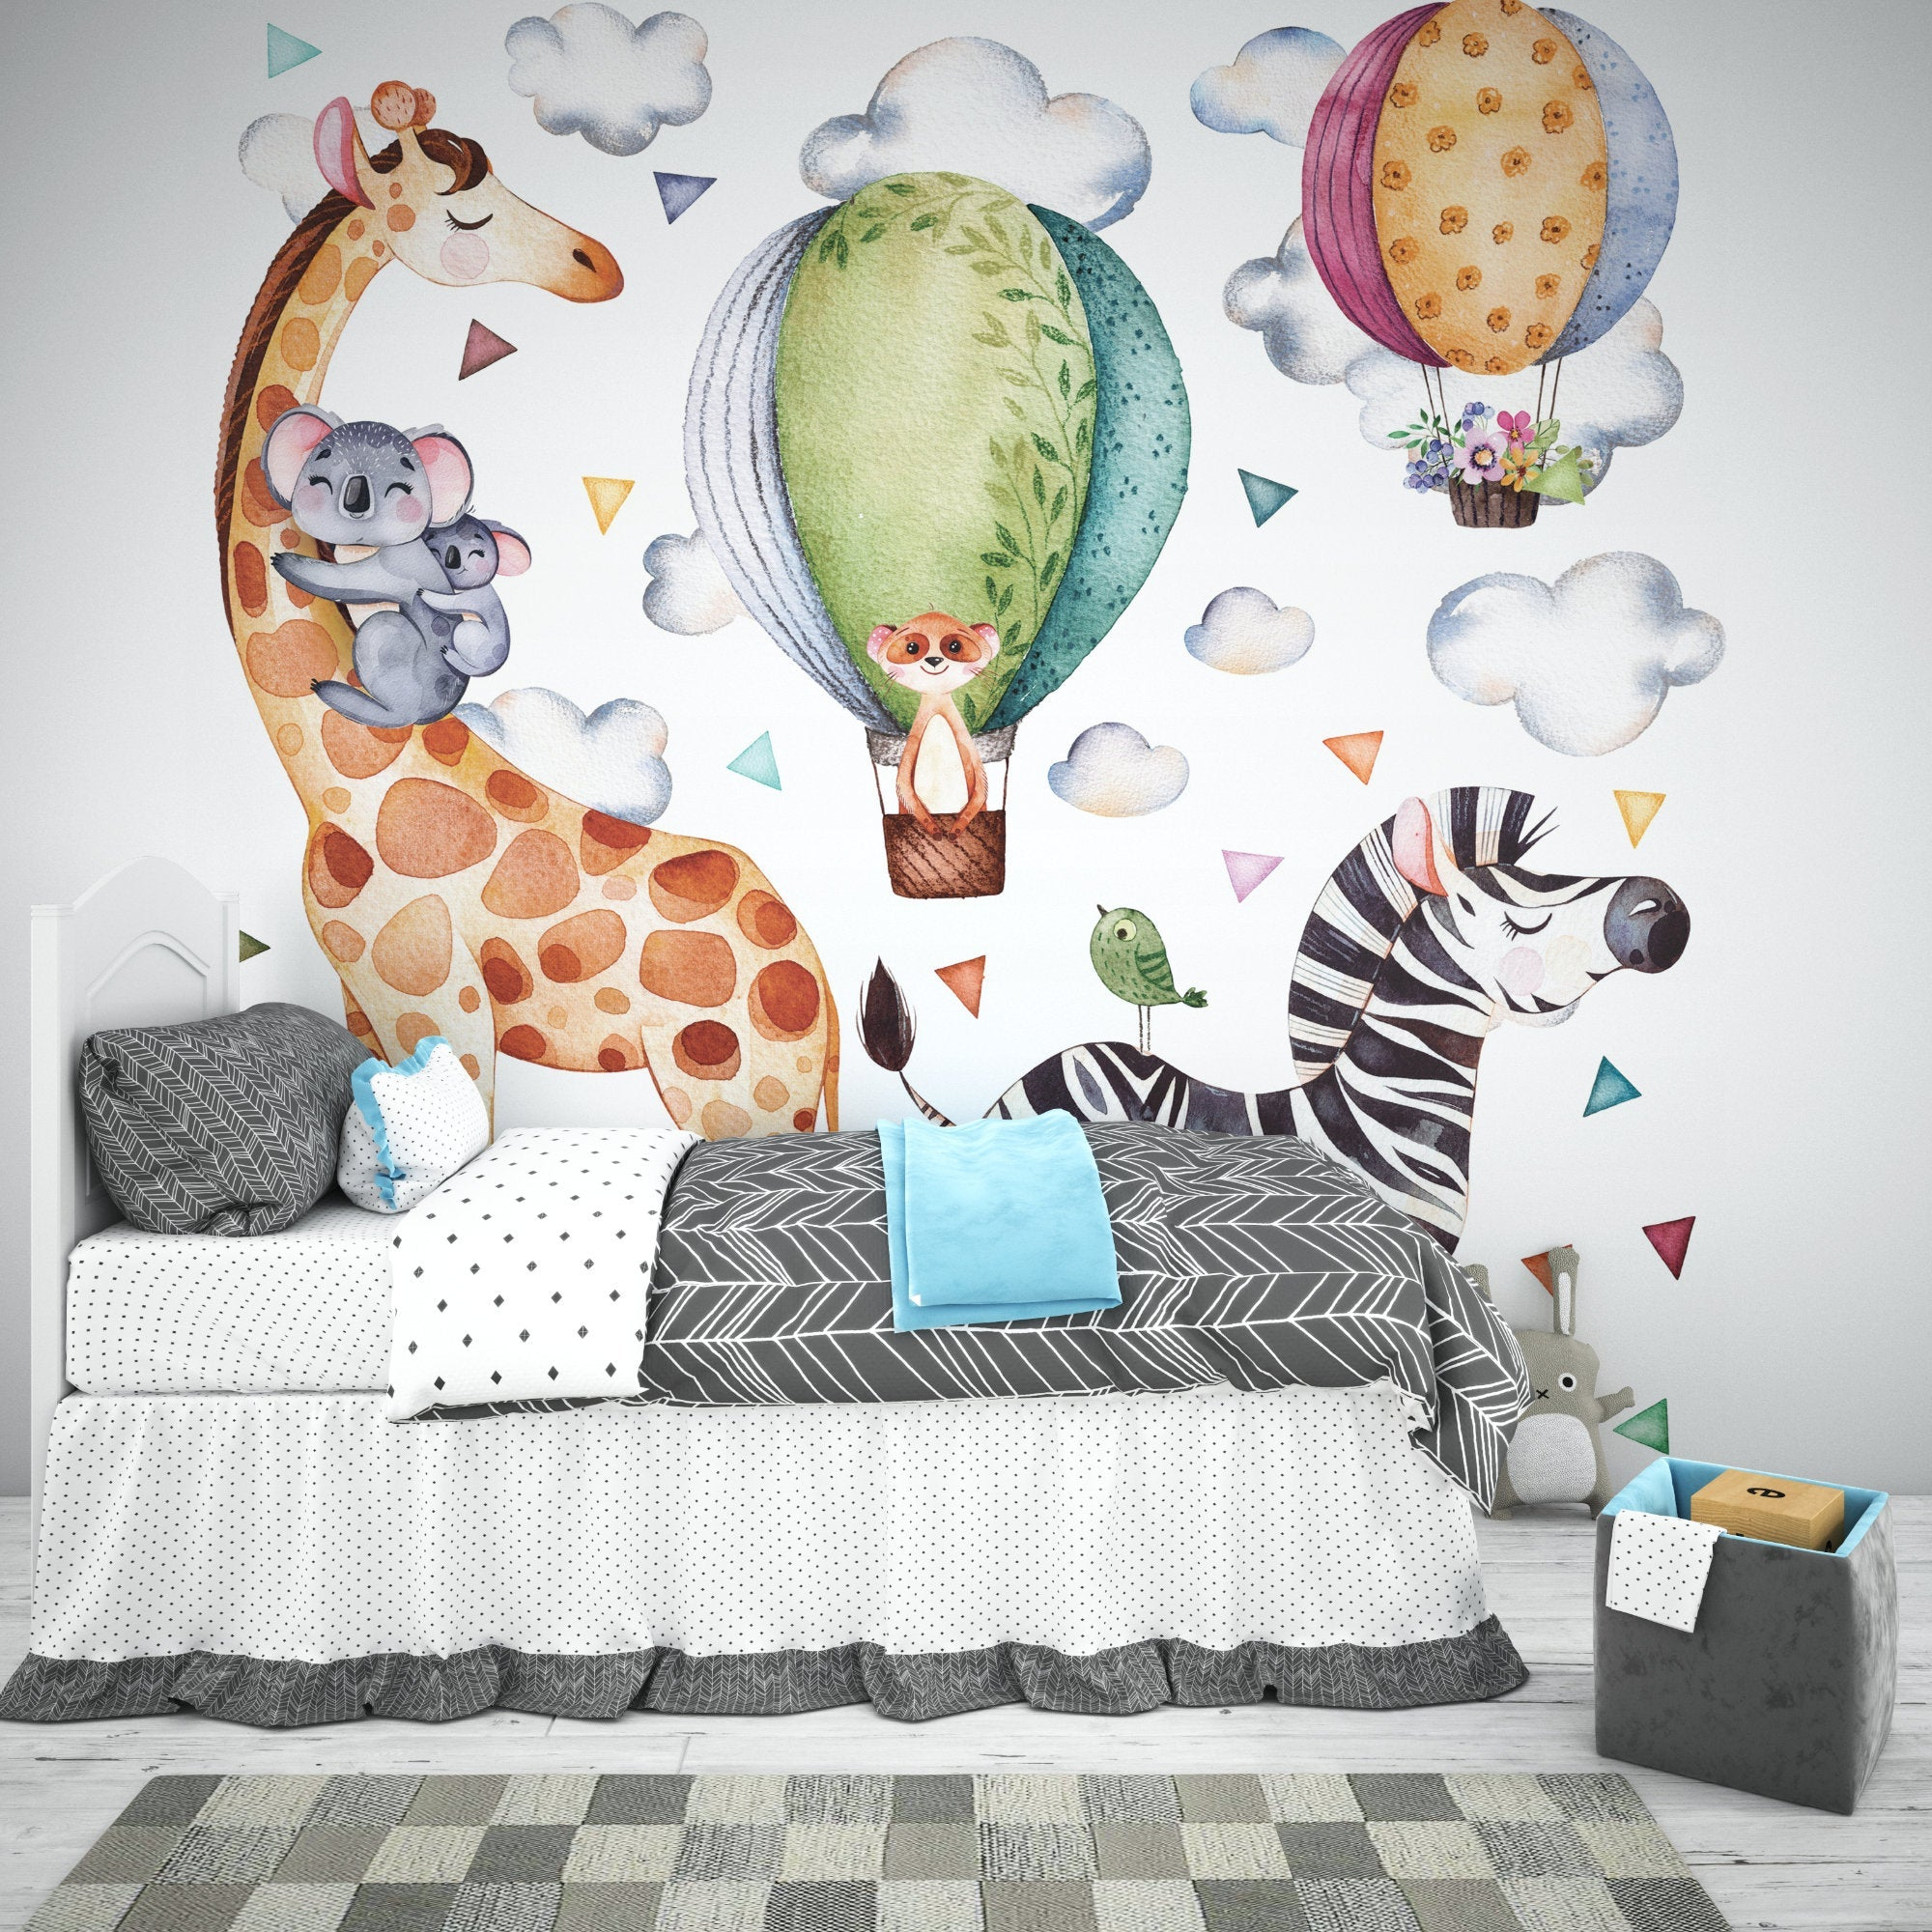 Hot air ballon Safari animal Set Fabric Removable re-positionable wall decals